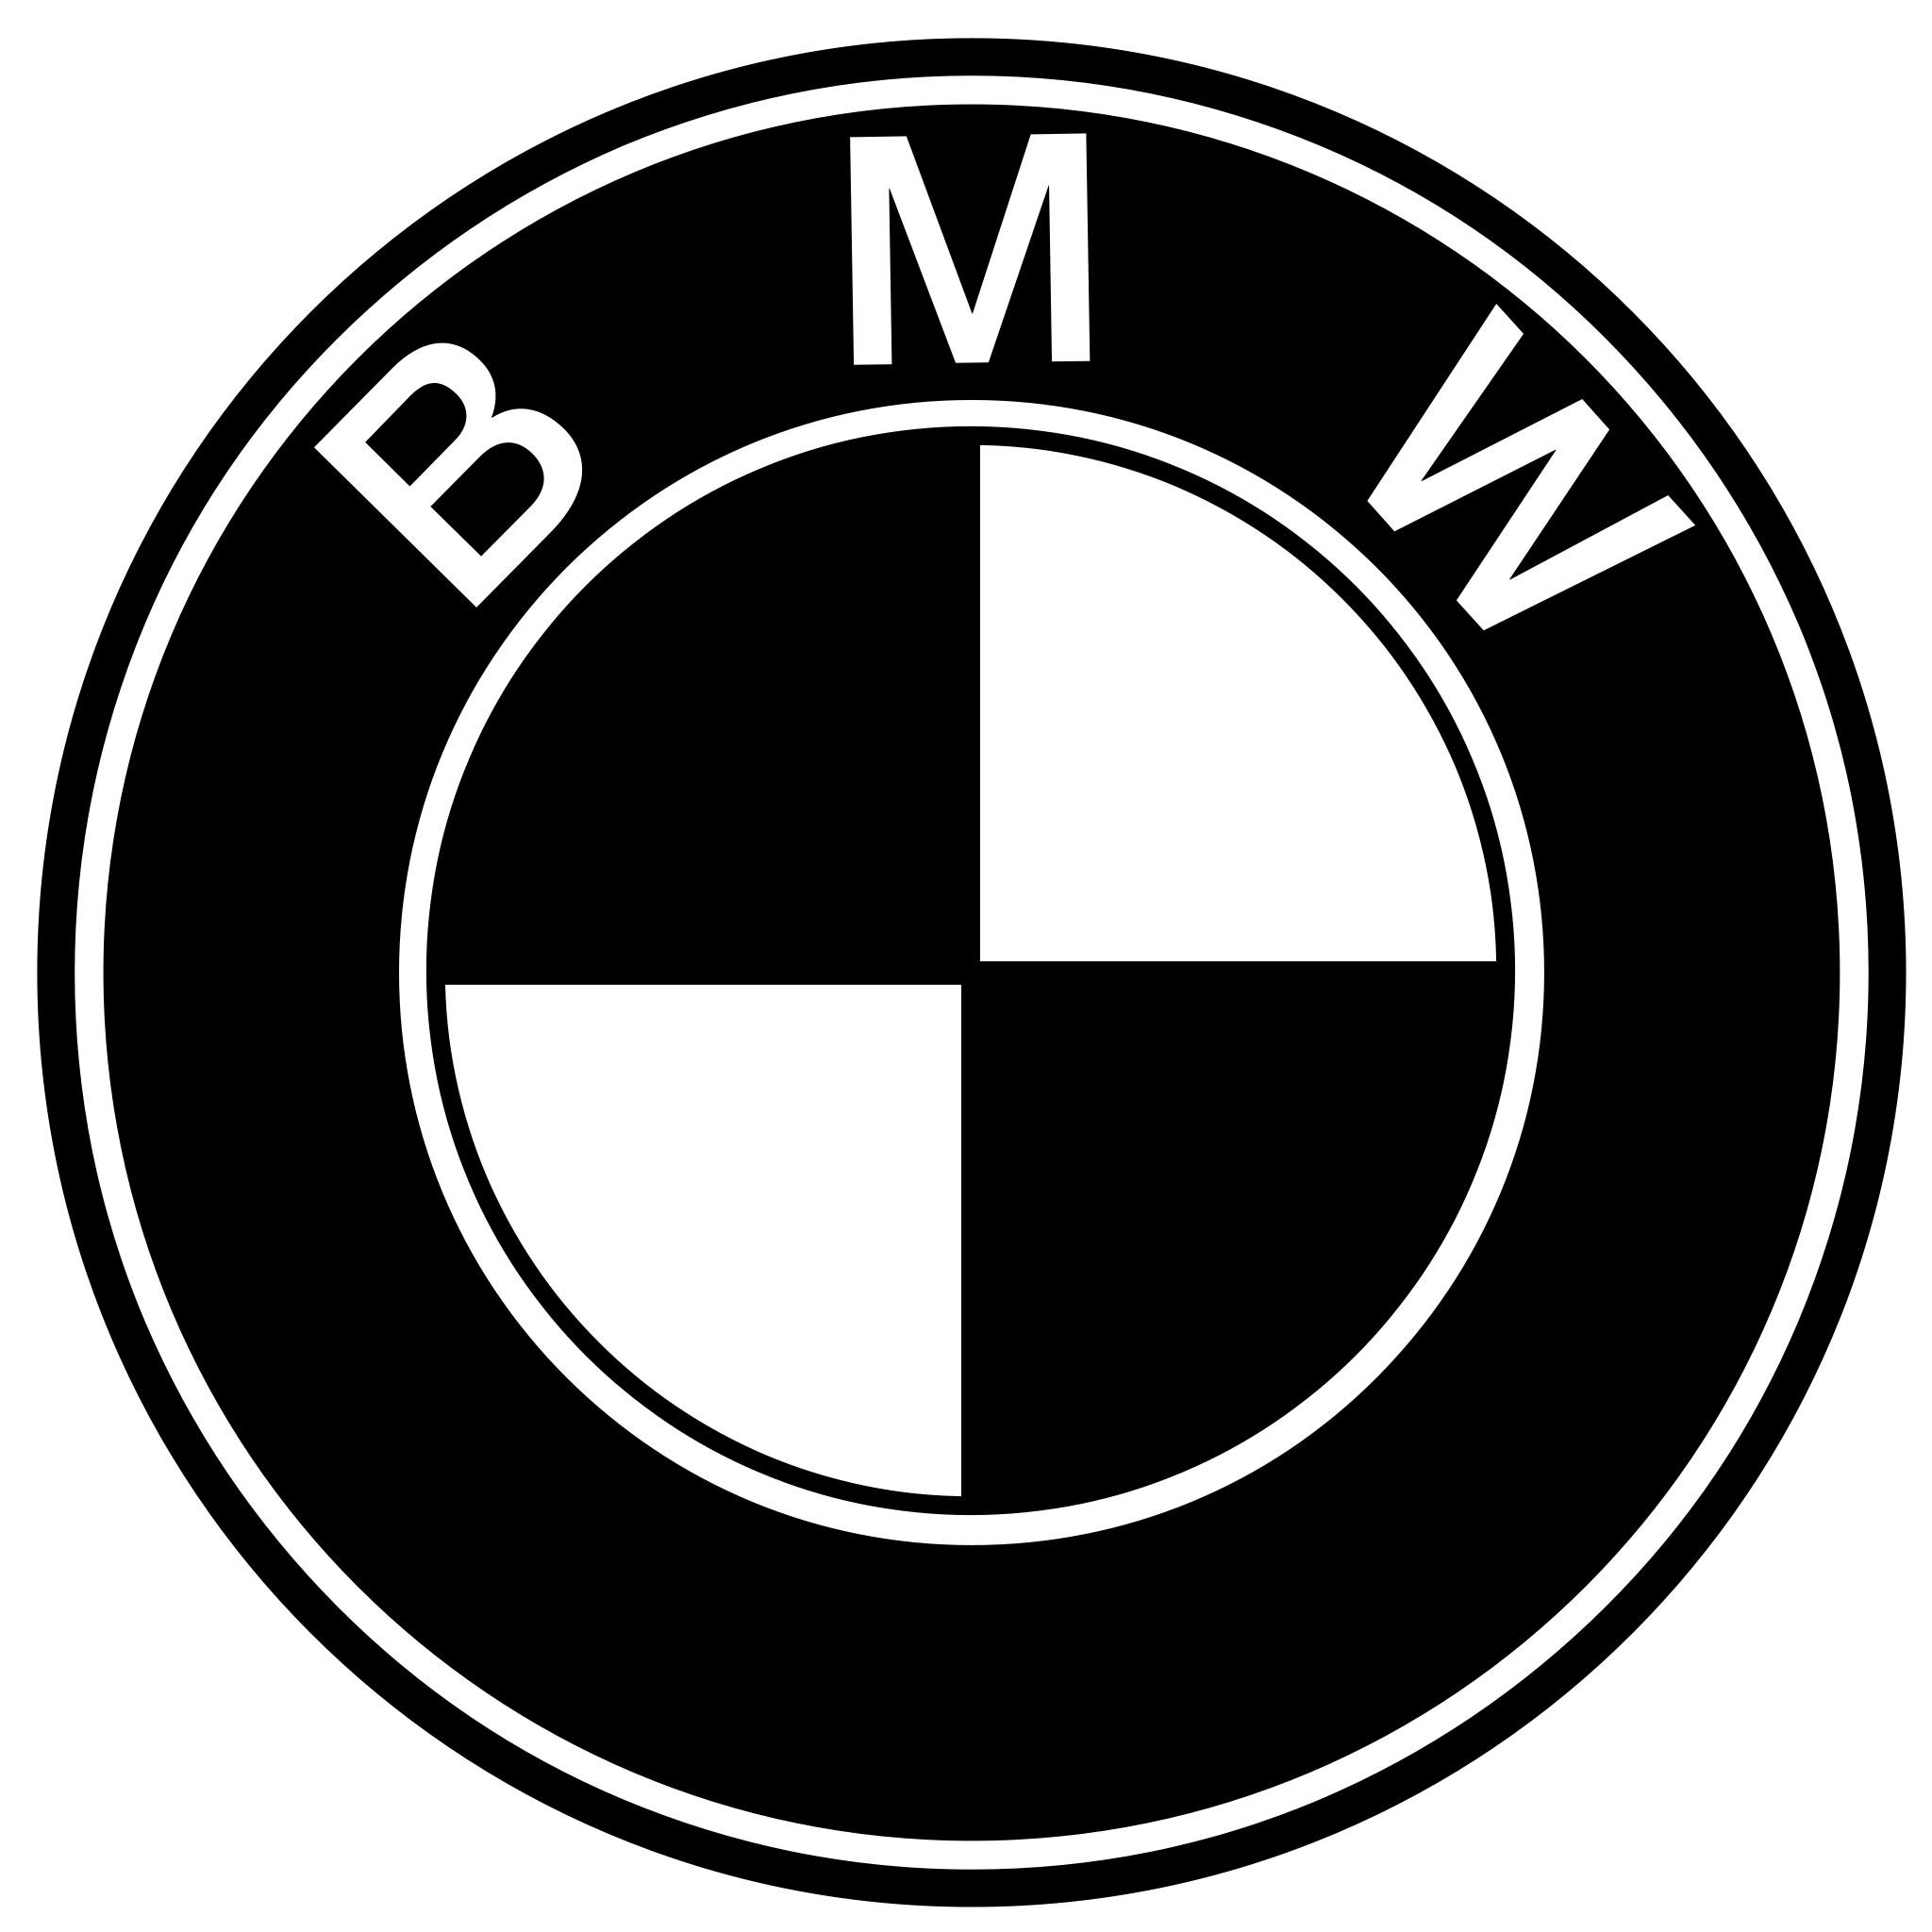 BMW clipart bmw logo And png #clipart Car clip